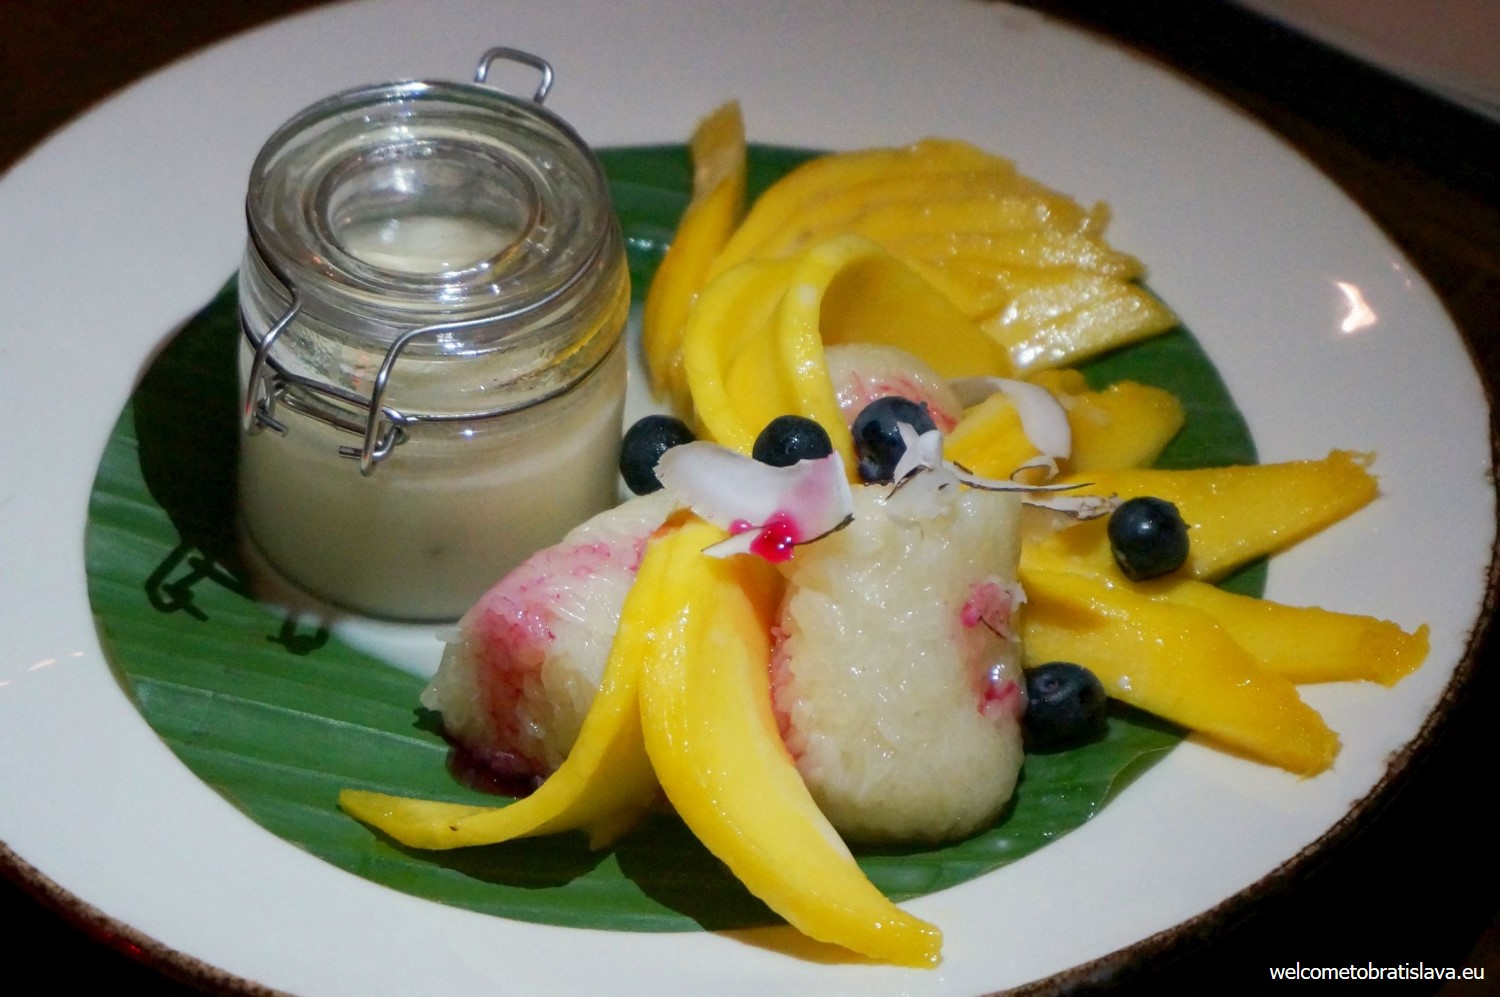 A delicious dessert - white sticky rice with mango, coconut and blueberries